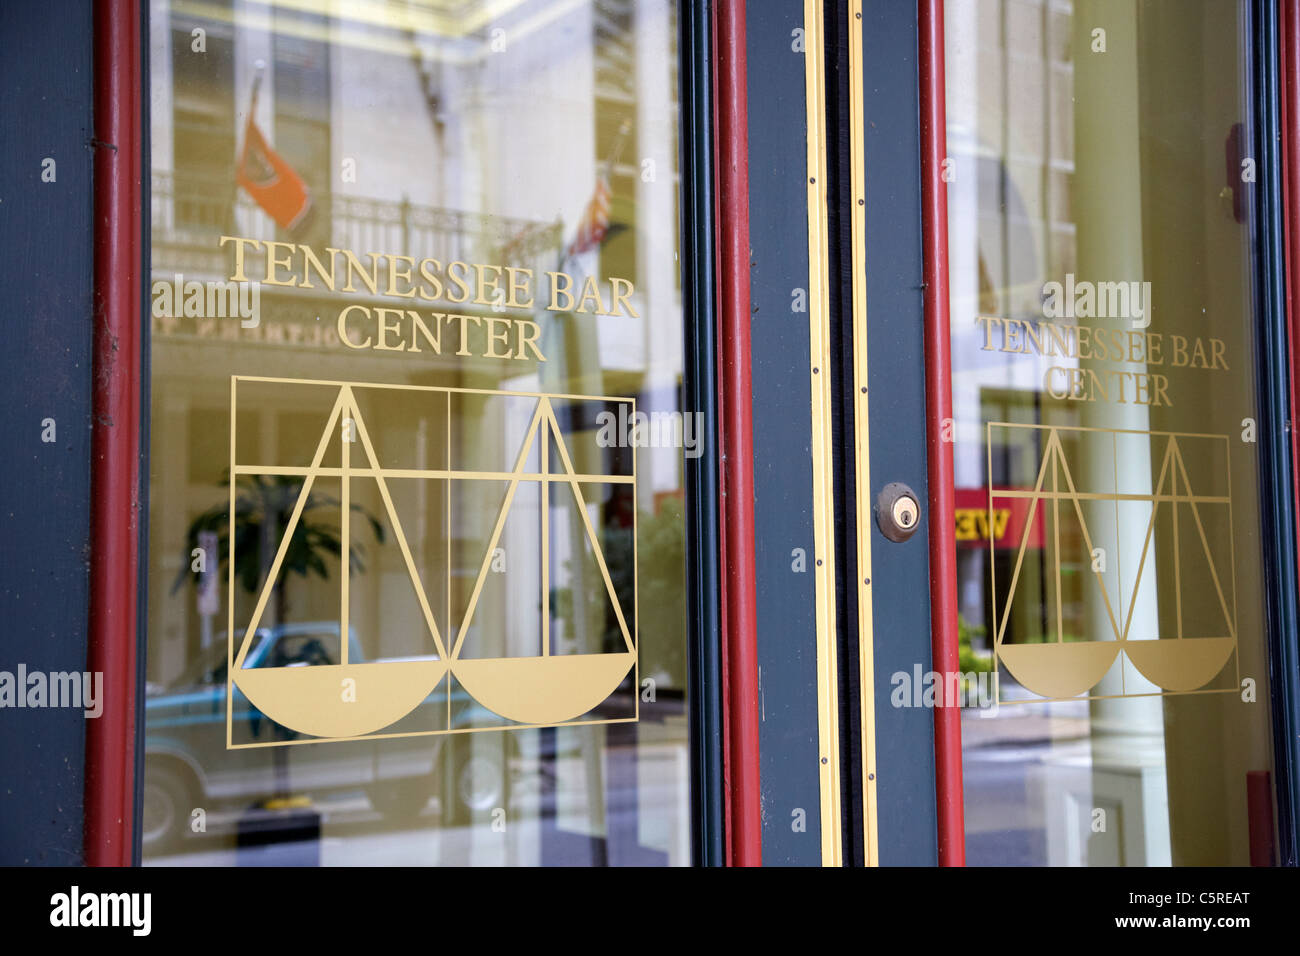 tennessee bar center logo doors Nashville Tennessee USA - Stock Image